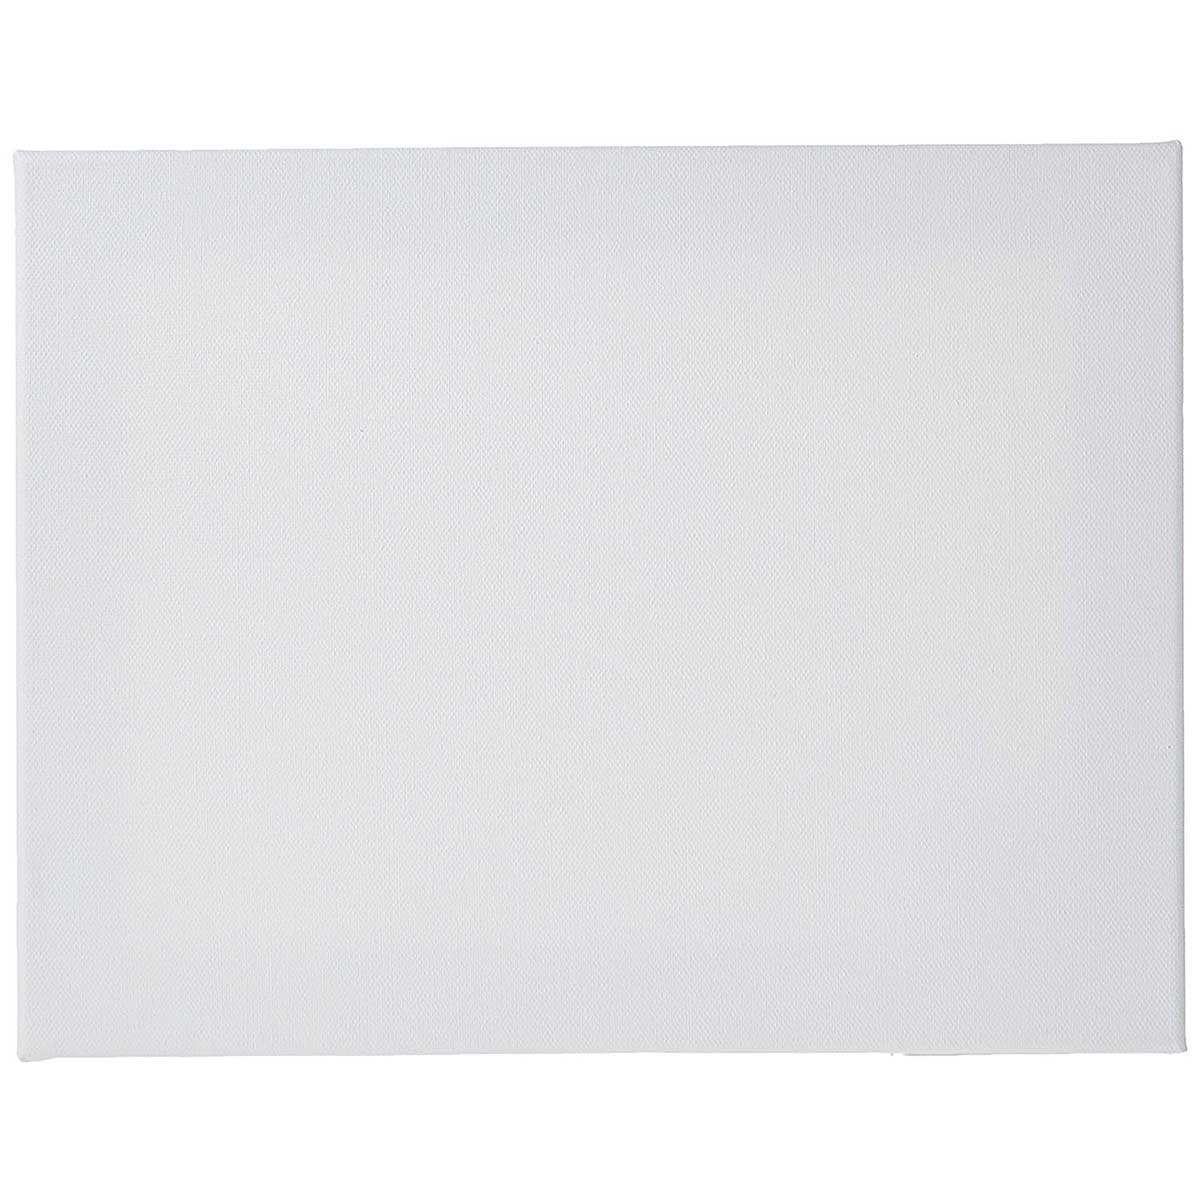 Stretched Canvas Board (9X12 Inch)